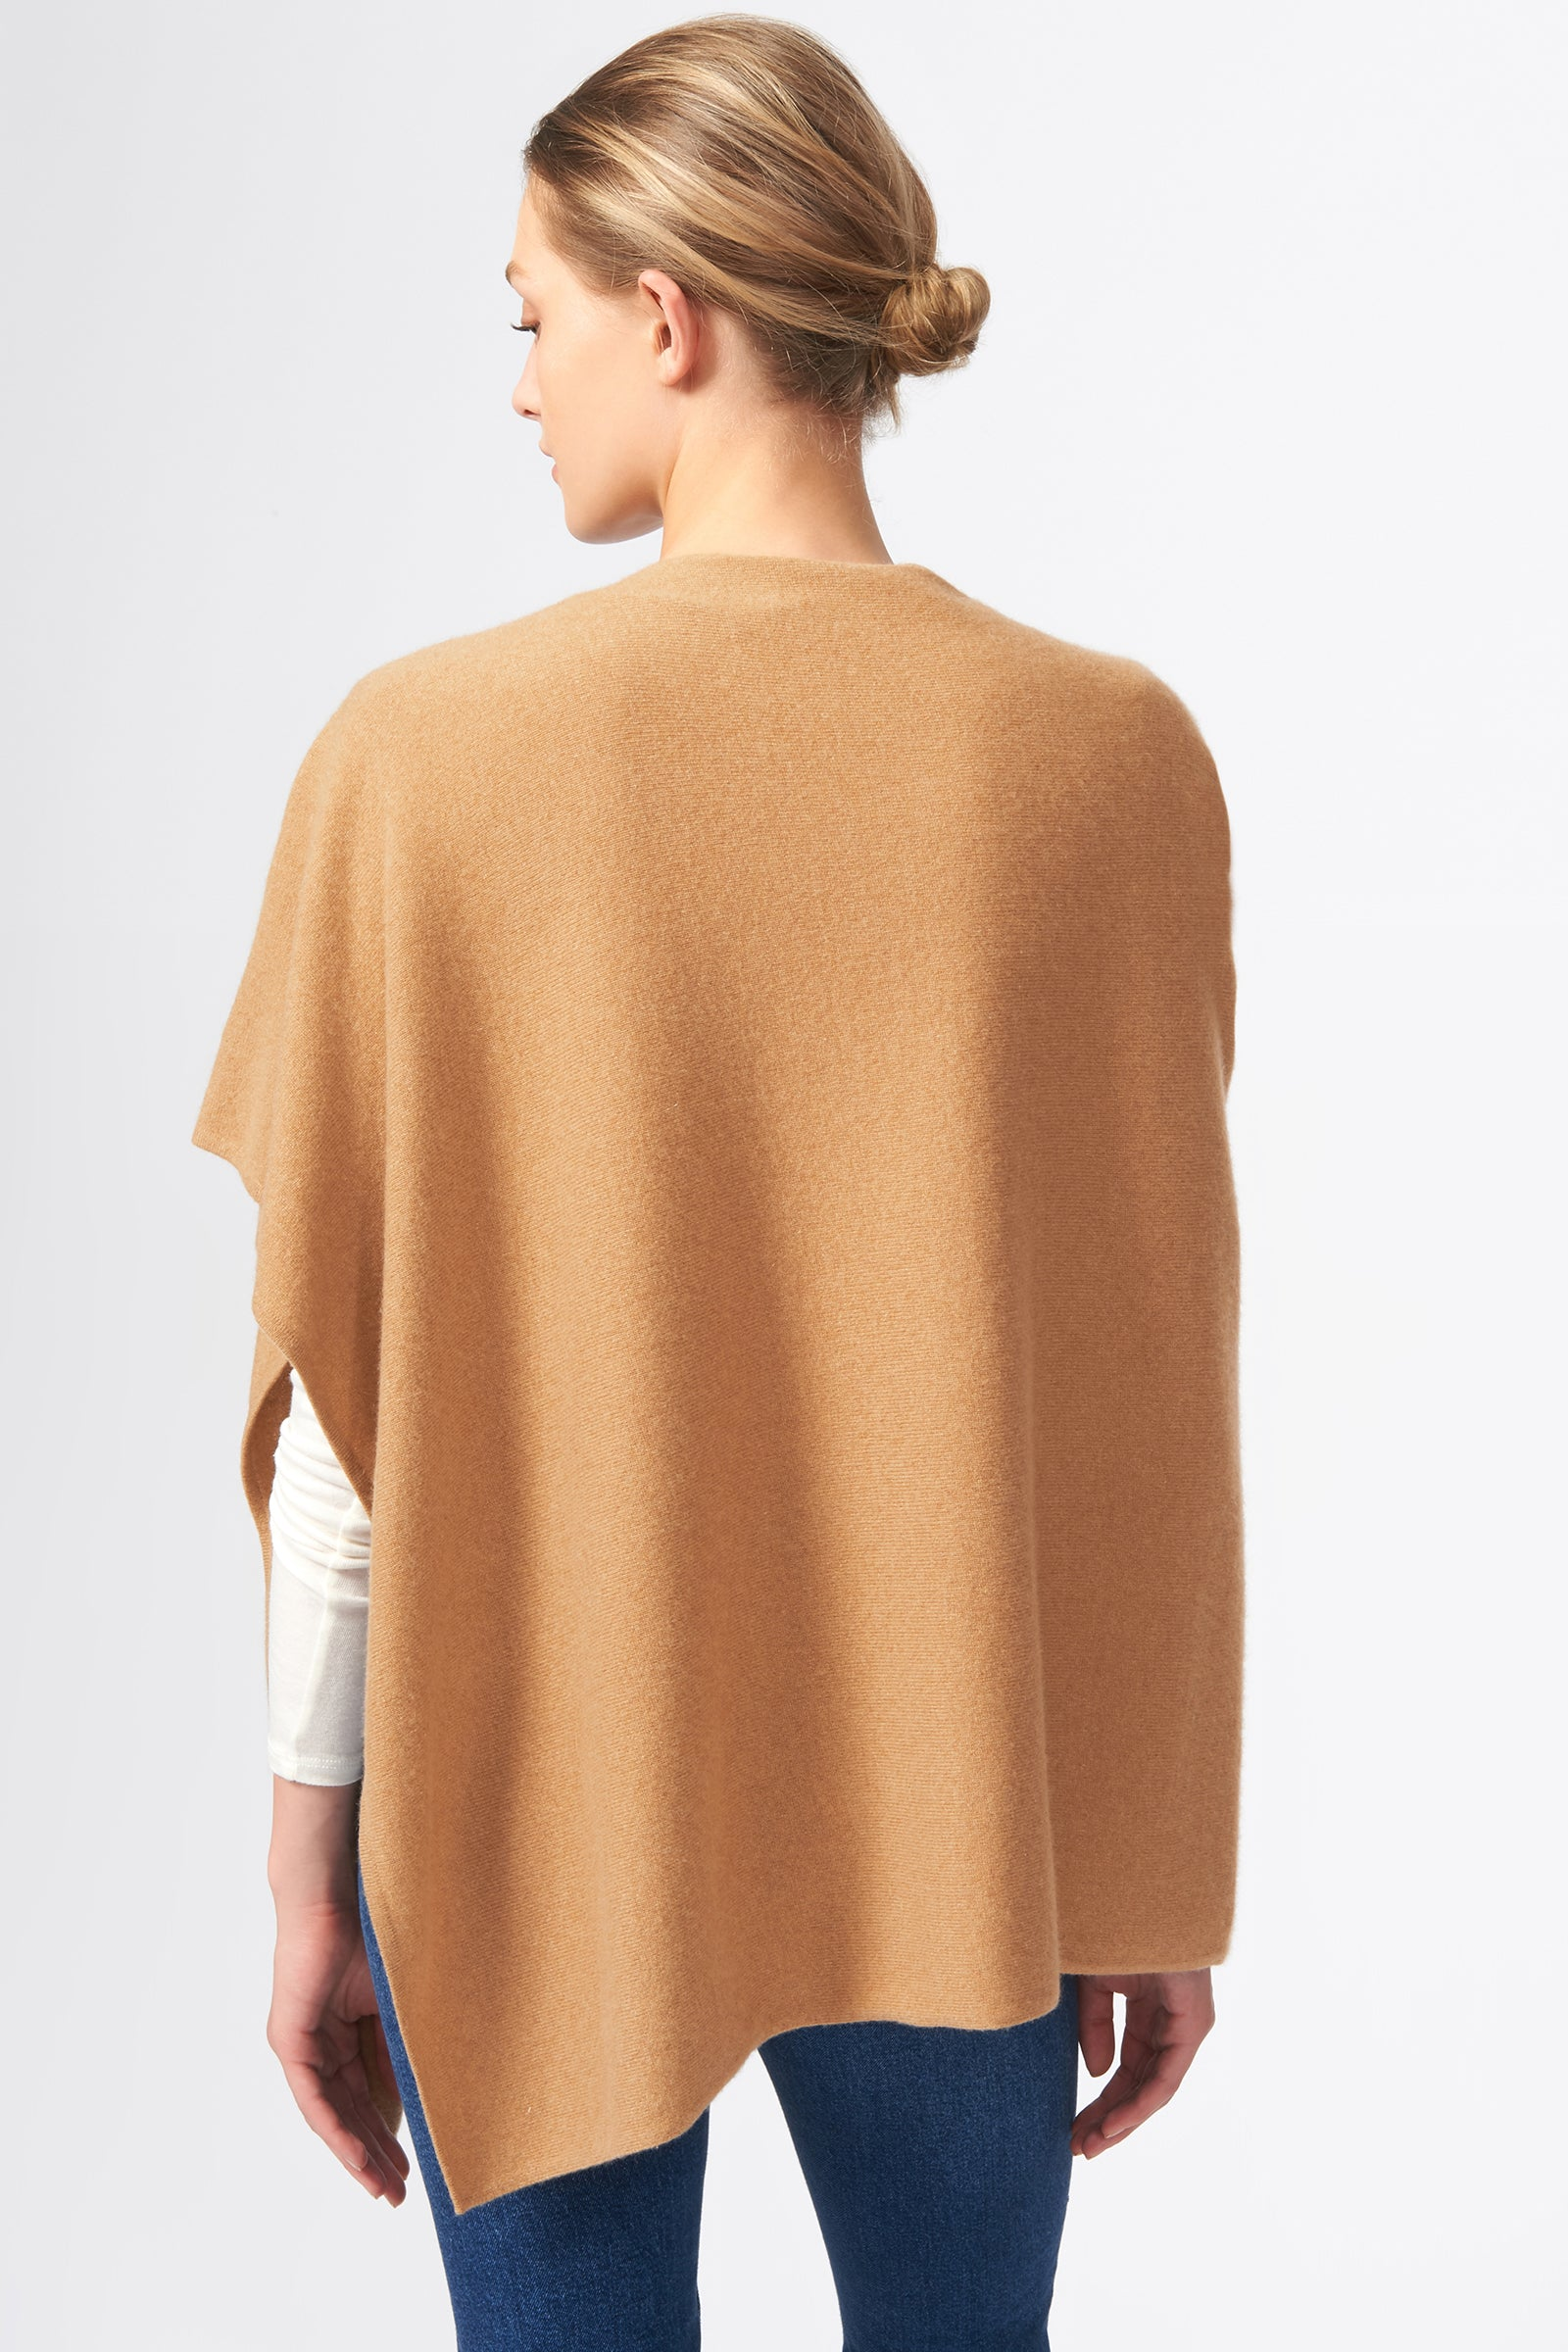 Kal Rieman Cashmere Poncho in Camel on Model Back View